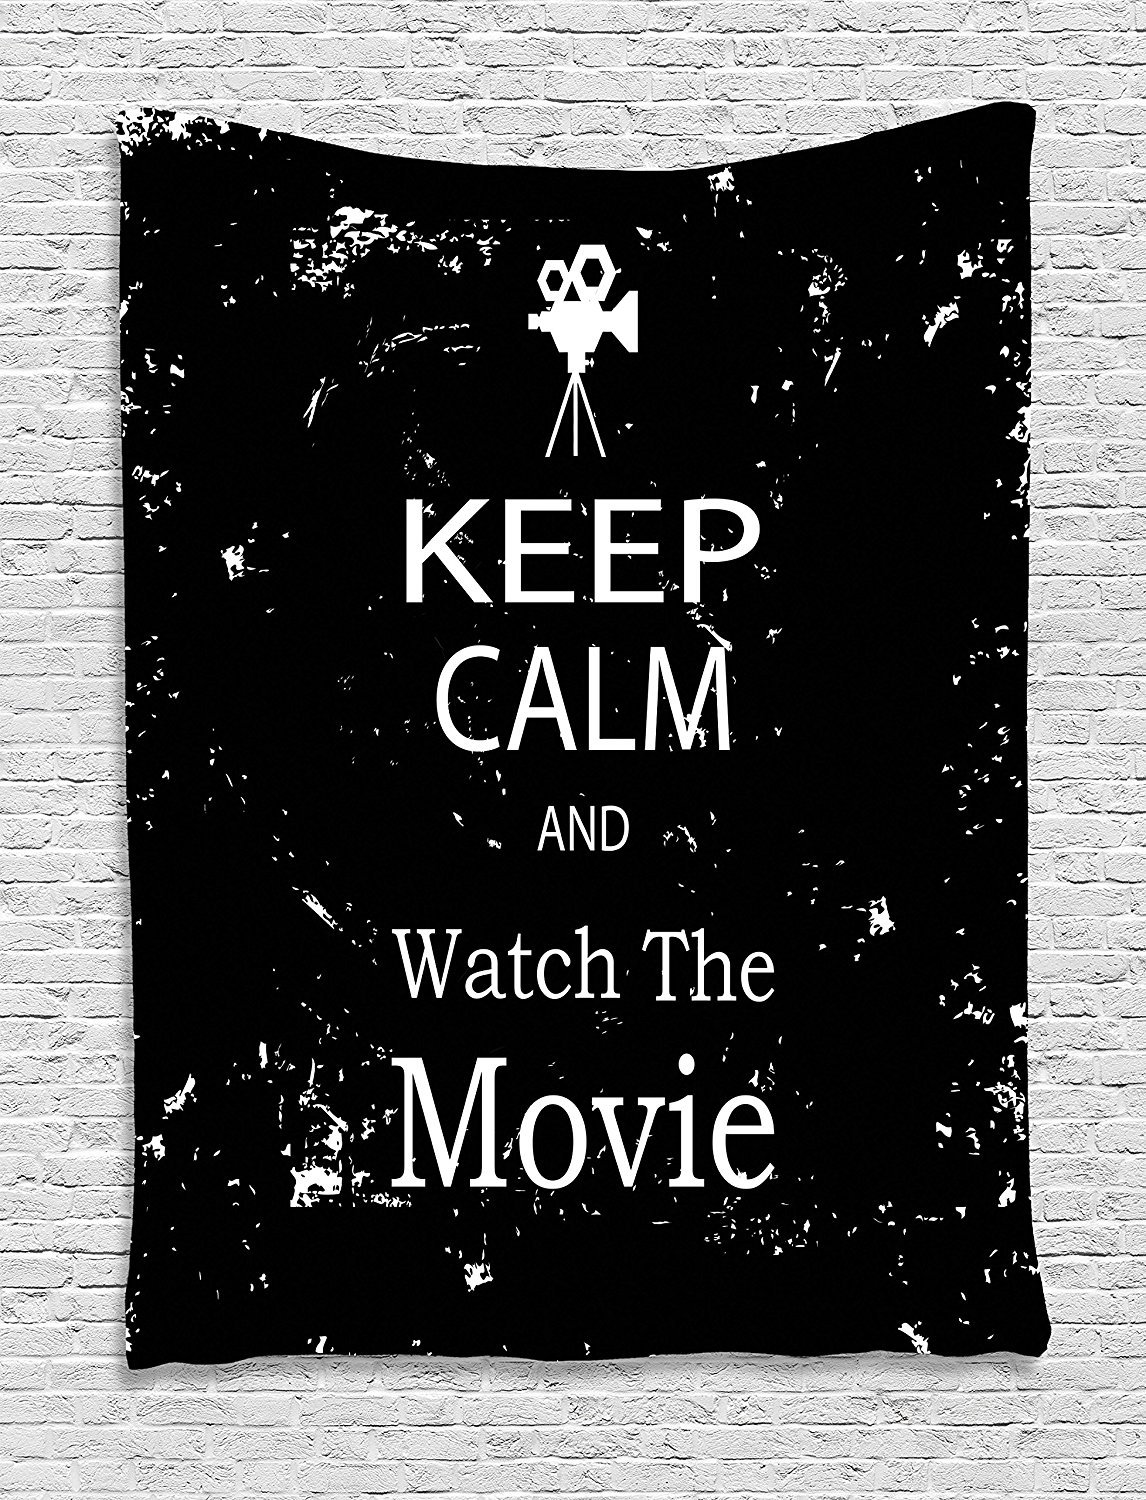 Keep Calm Tapestry, Watch the Movie Quote for Film Buffs Grungy Weathered Backdrop with Old Camera, Wall Hanging for Bedroom Living Room Dorm, 60 W X 80 L Inches, Black White